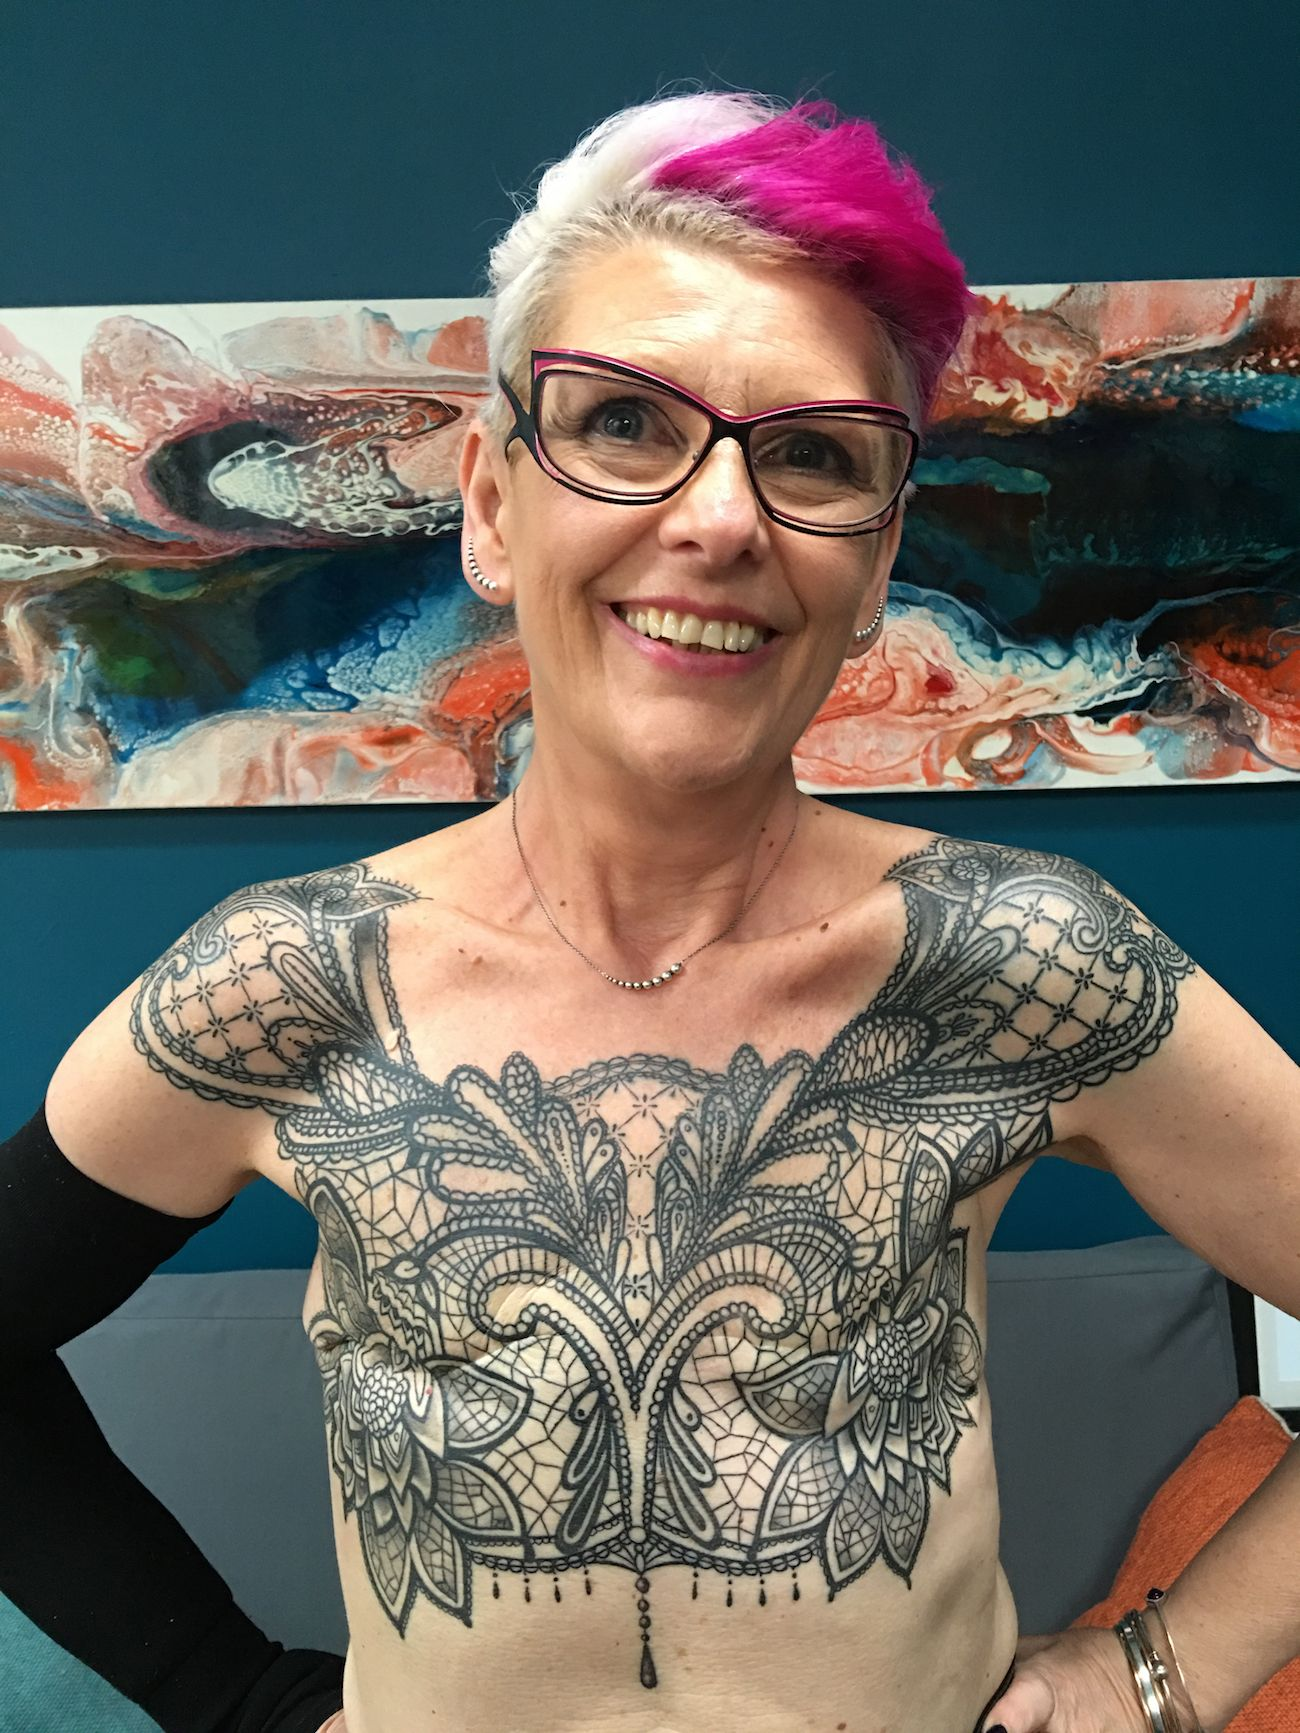 Woman Gets Chest Tattoo To Cover Her Mastectomy Scars While picking an awesome chest tattoo design from the endless possibilities may seem like an impossible task. chest tattoo to cover her mastectomy scars